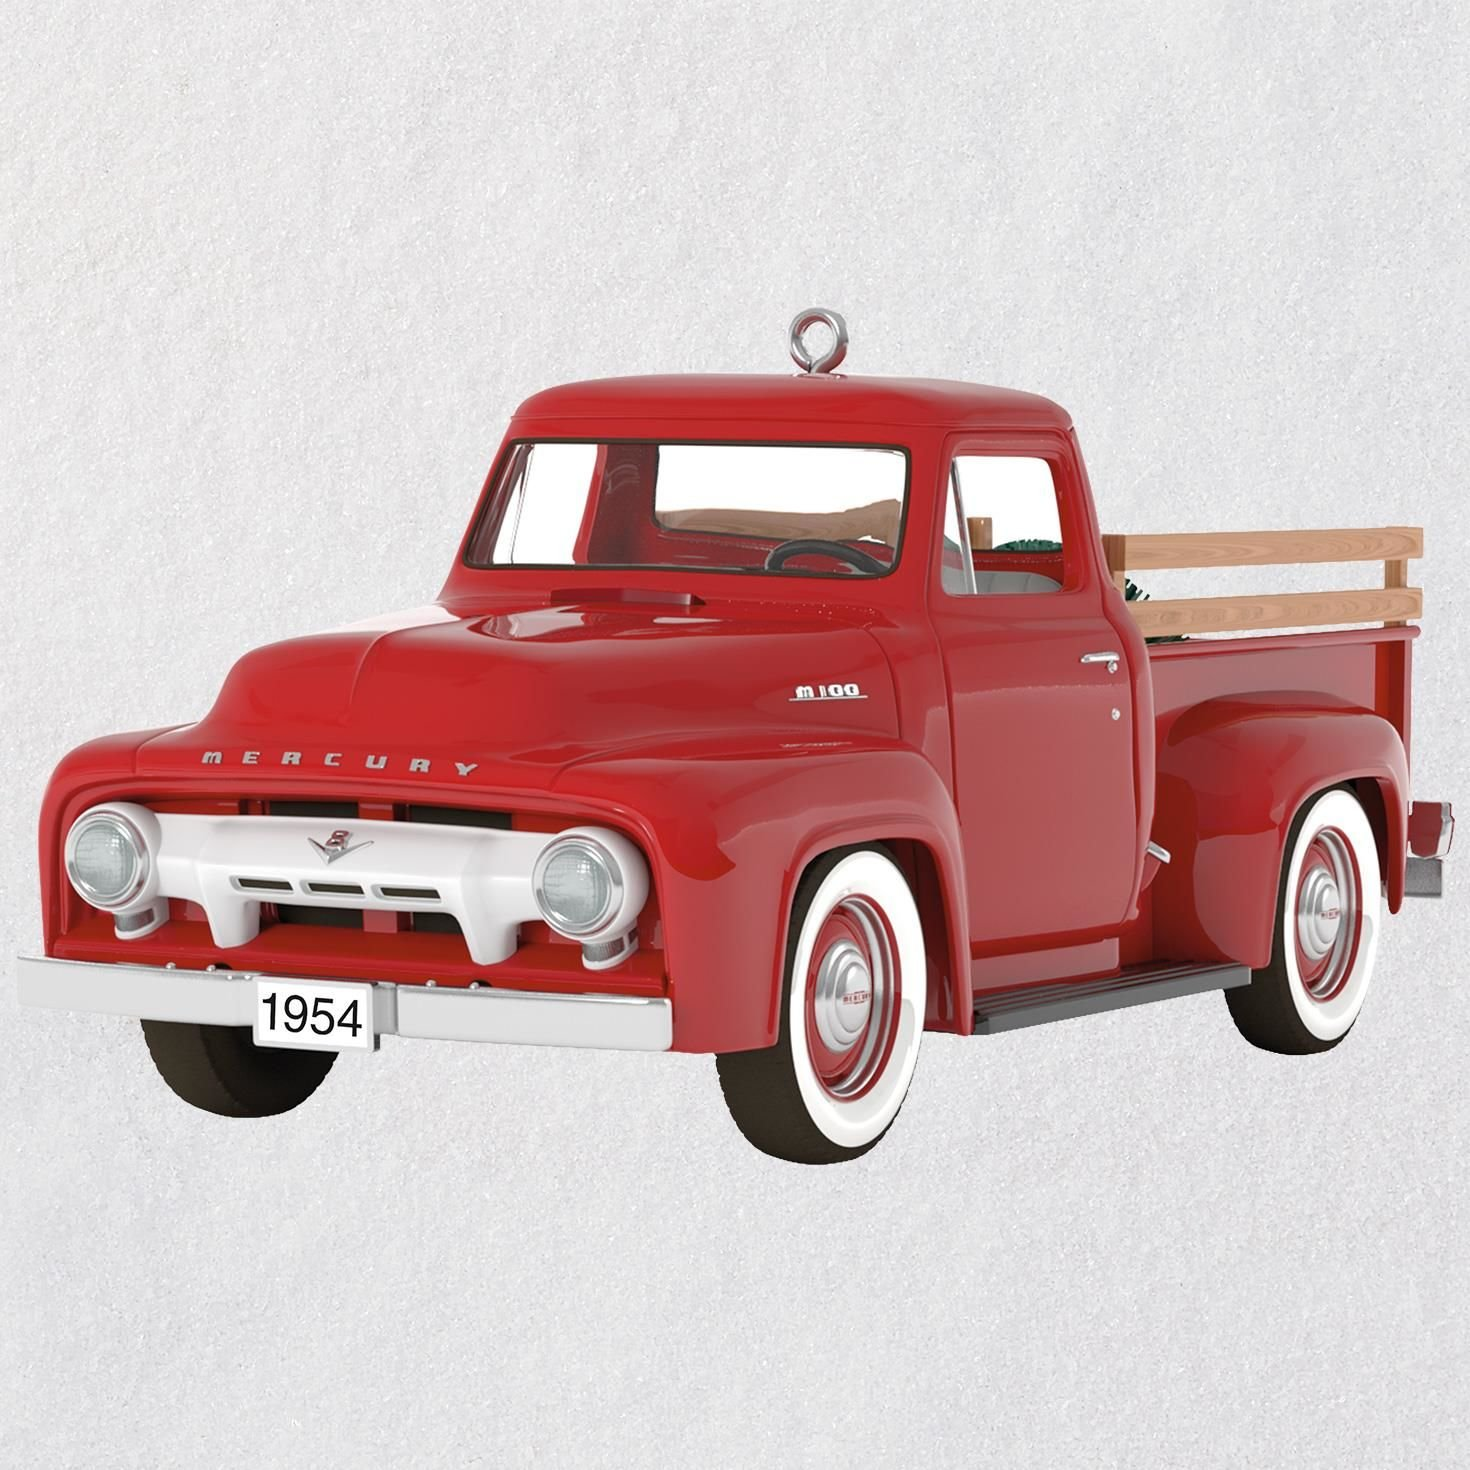 Hallmark Keepsake Christmas Ornament 2018 Year Dated, All-American Trucks 1954 Mercury M-100, Metal